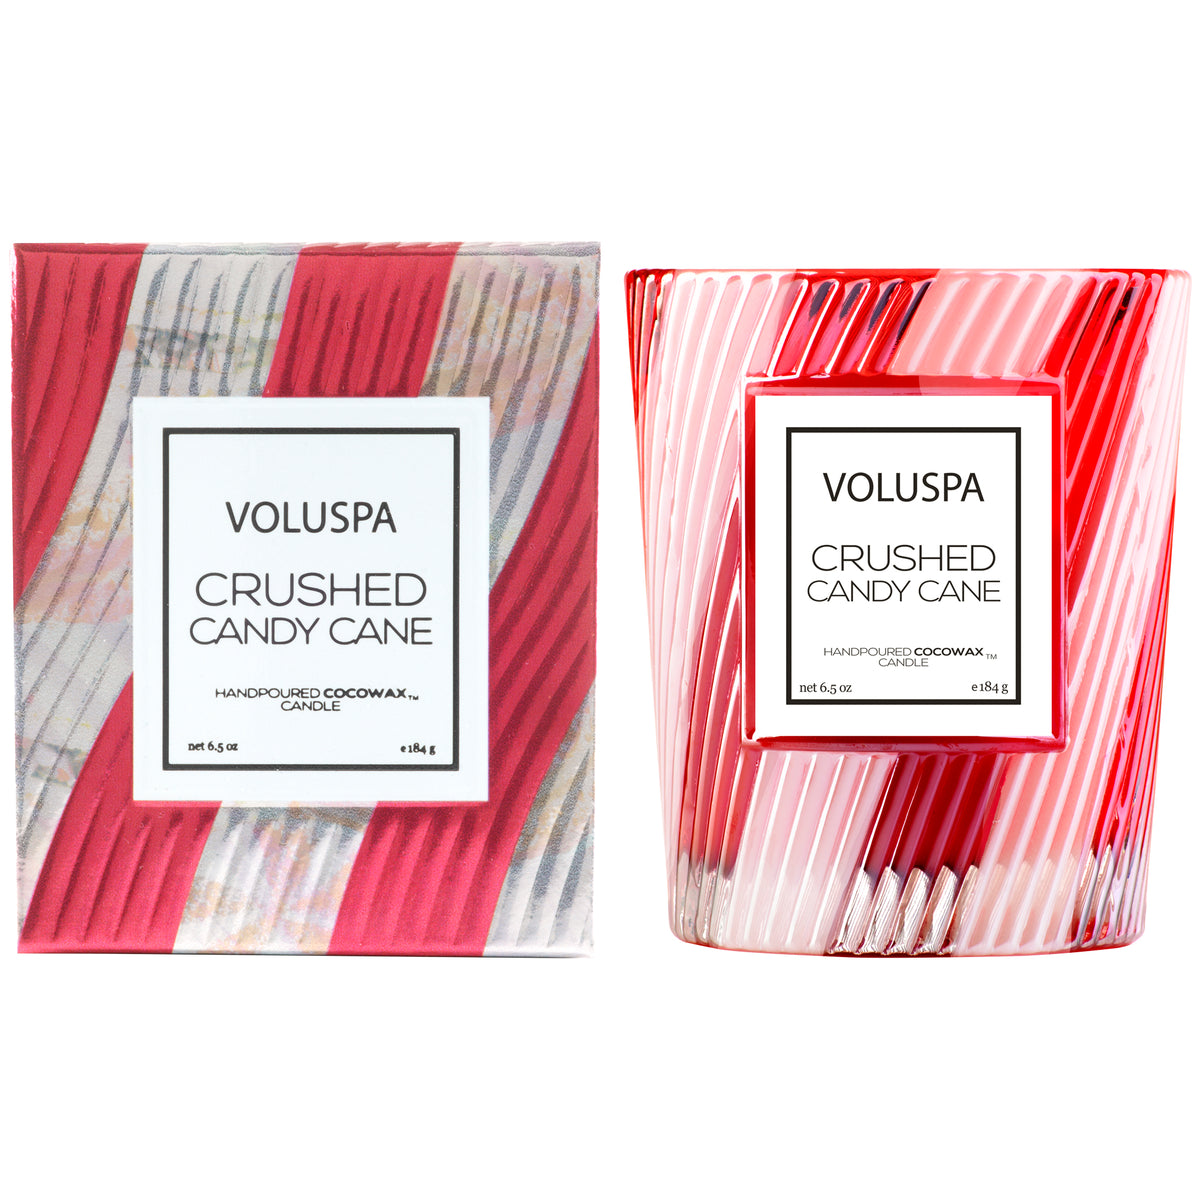 Crushed Candy Cane - Limited Edition Classic Candle - 2